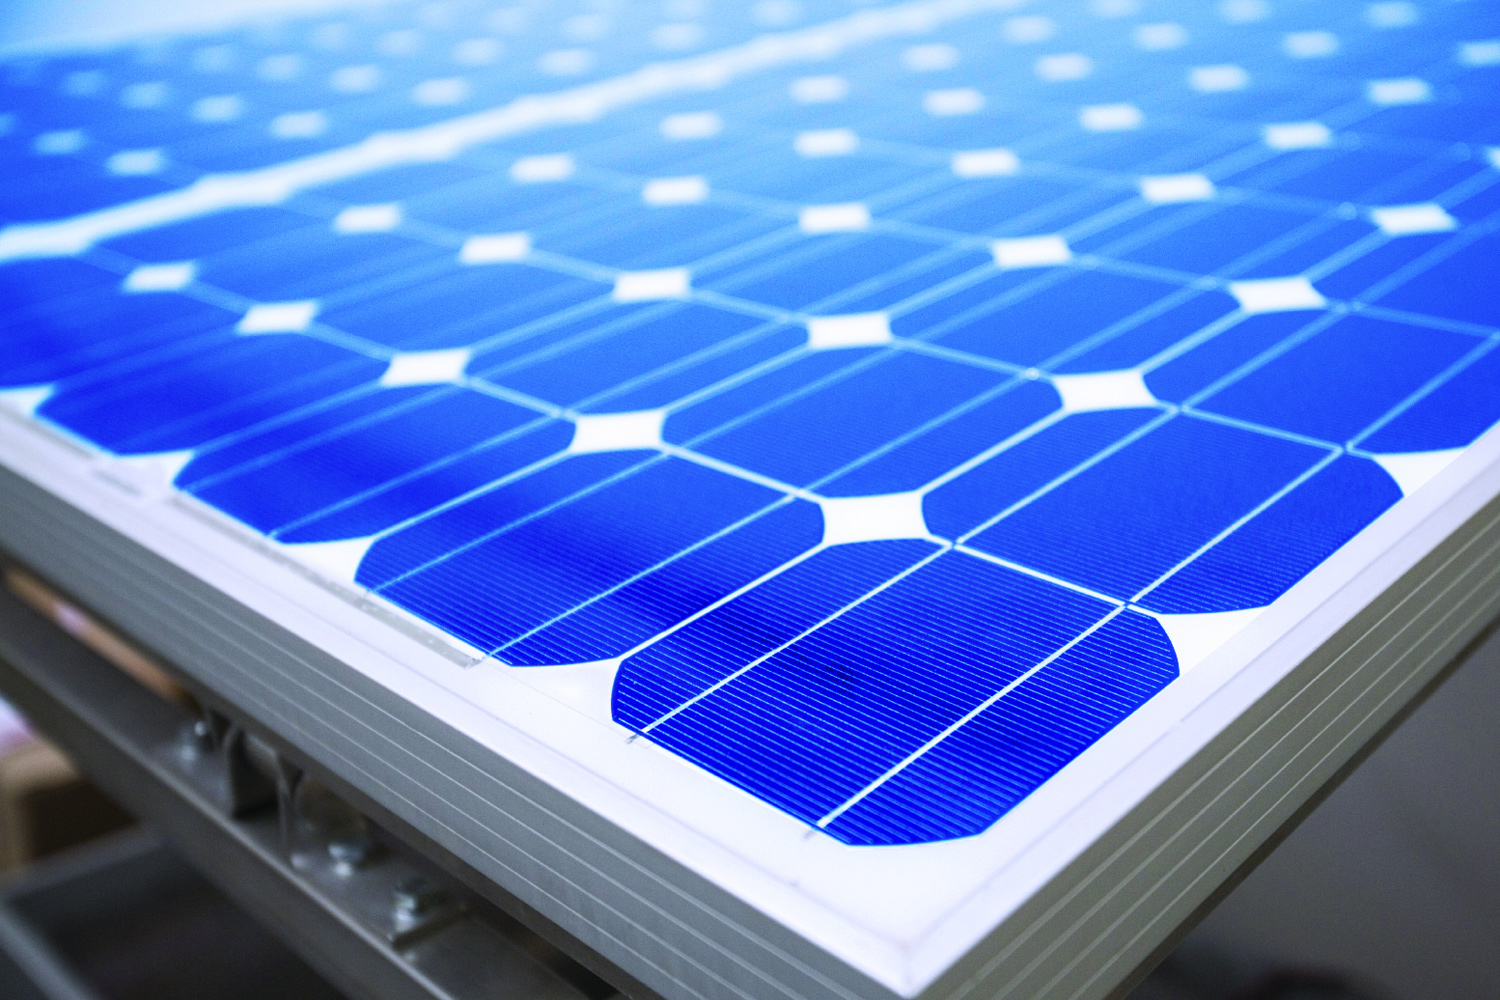 Download High Resolution Image|/content/dam/graco/aftd/images/material profiles/silicone-potting-photovoltaic.jpg